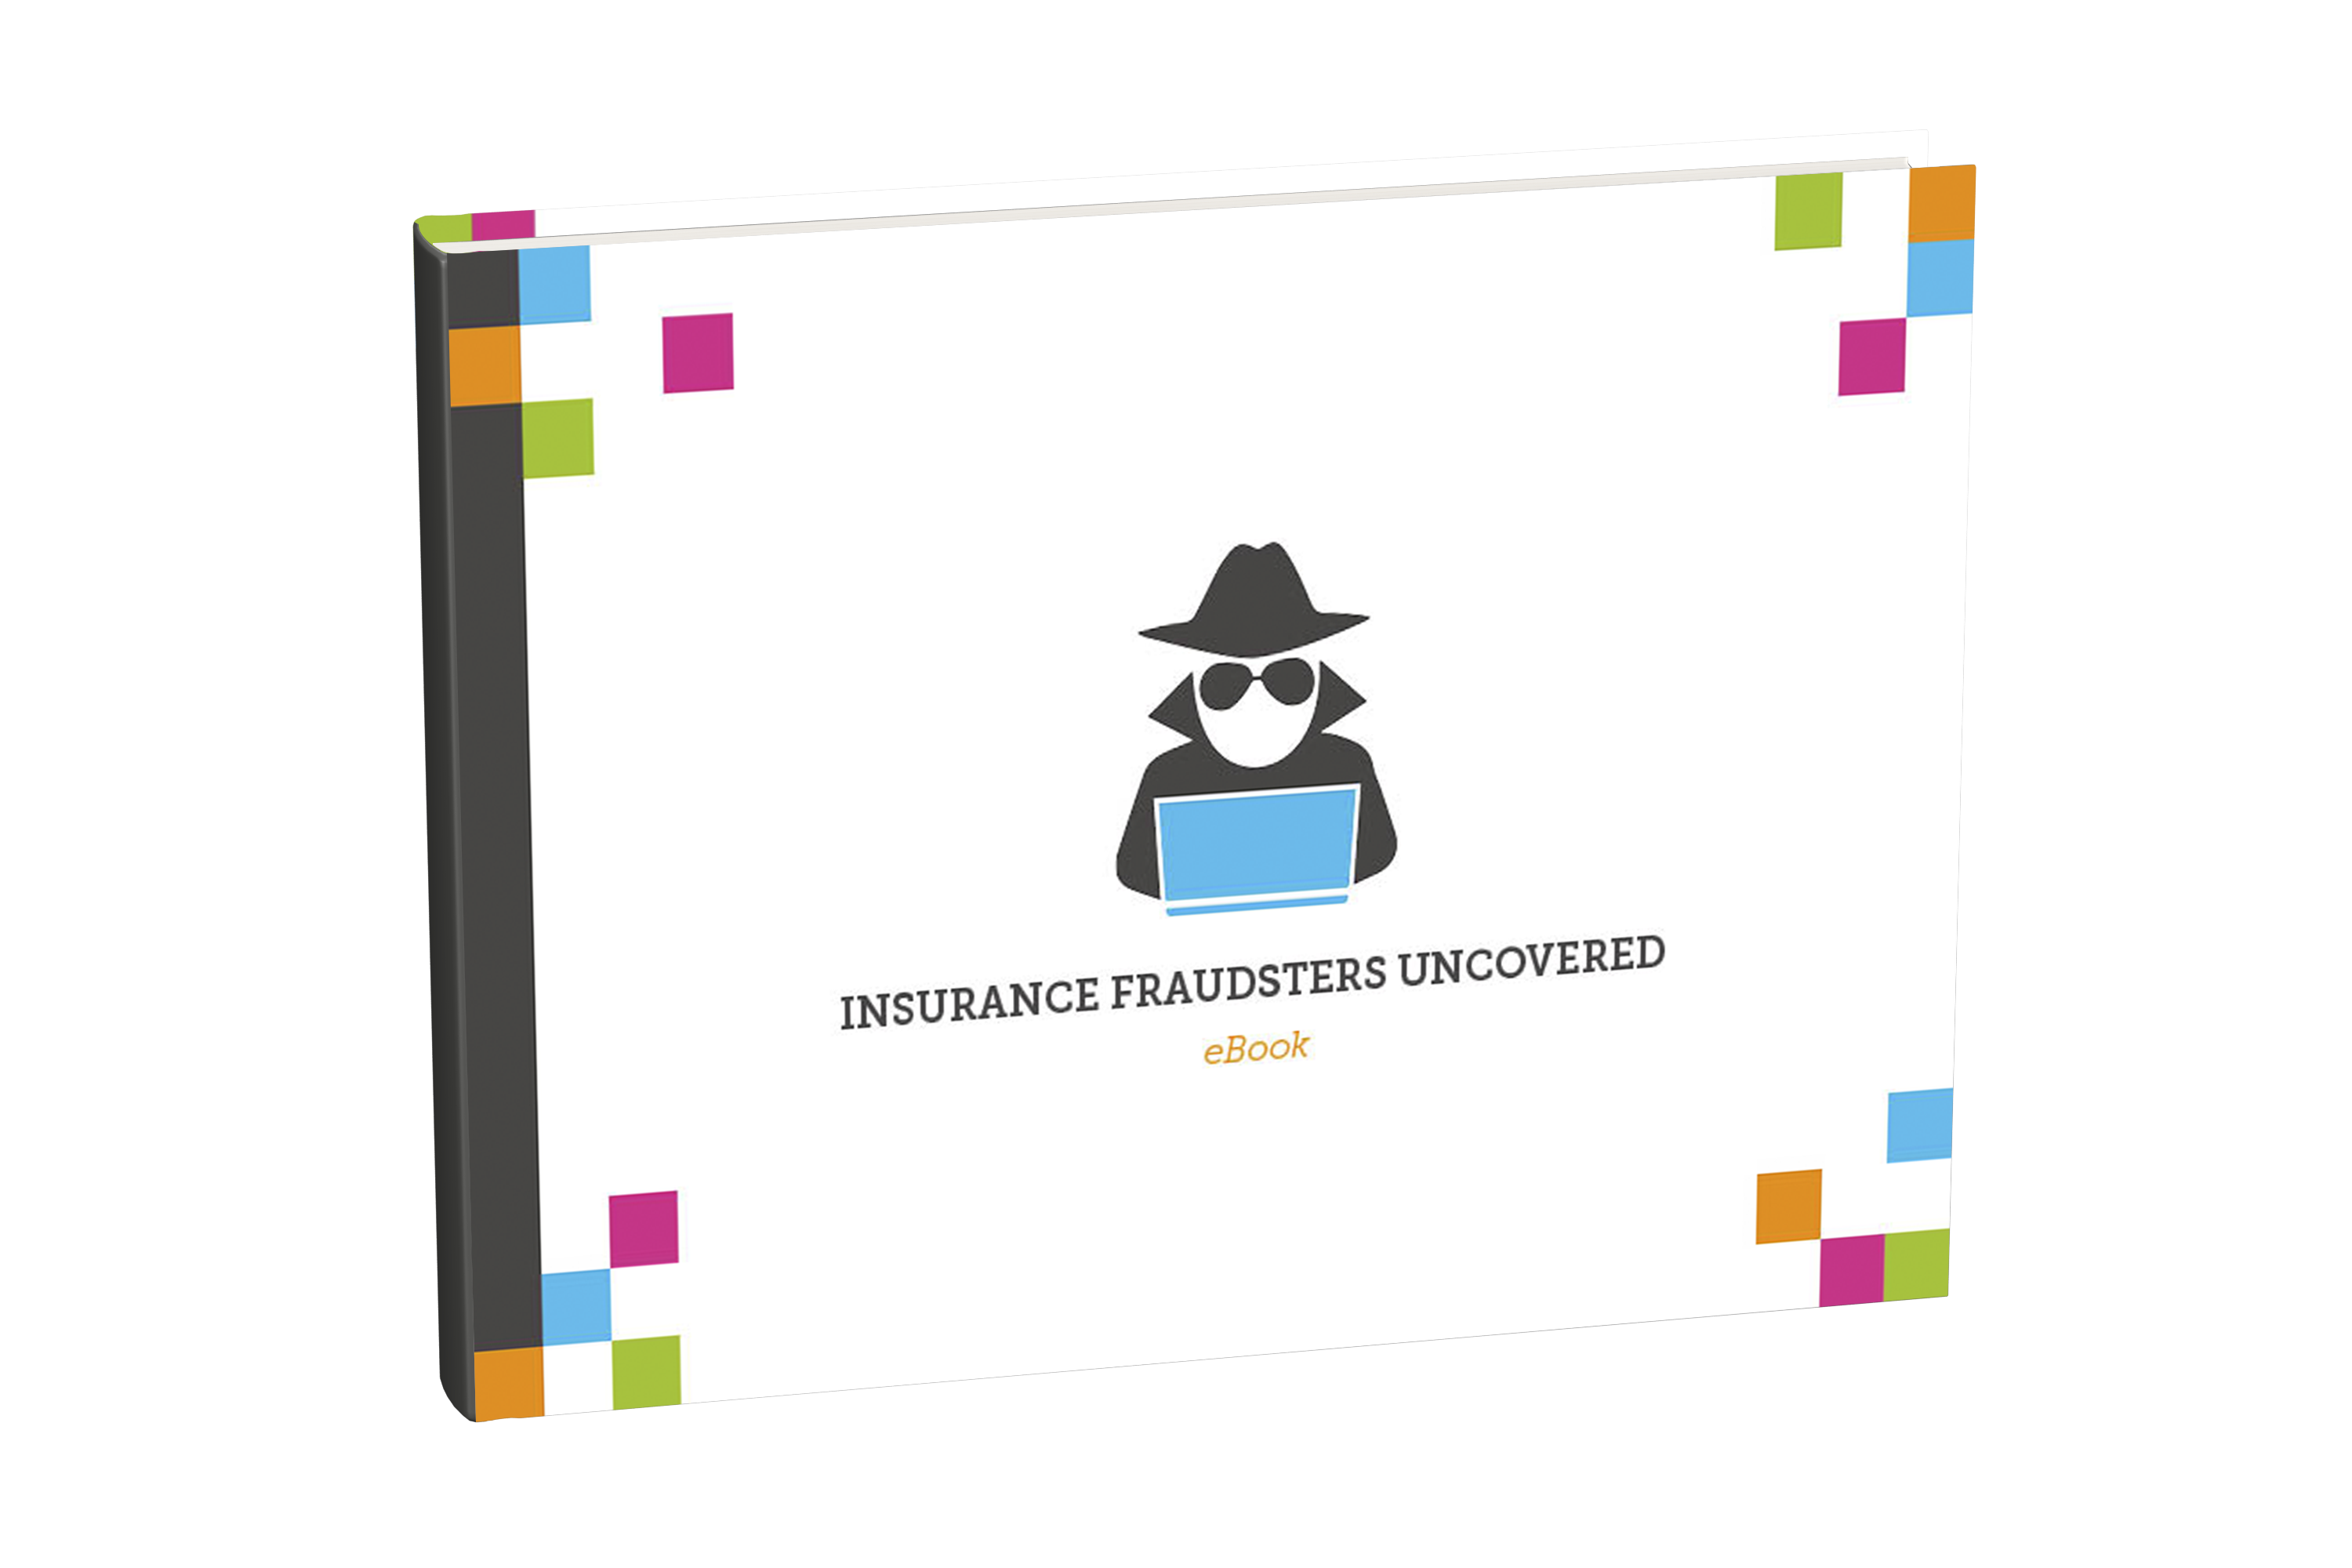 Download_SMALL_-_ebook_-_Insurance_Fraudsters_Uncovered.jpg